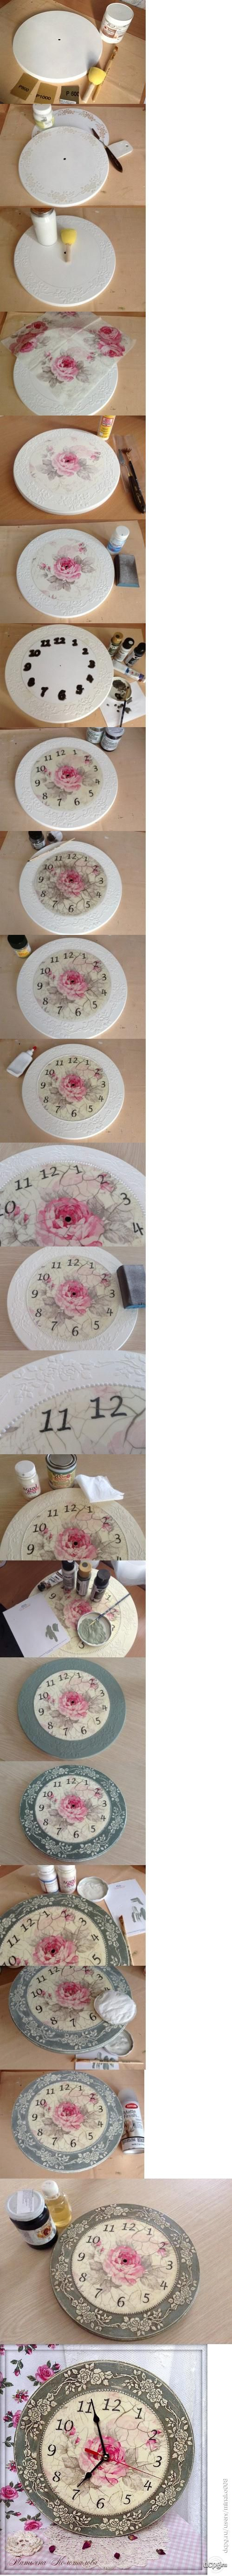 Decoupage clock, these techniques would make a pretty seat or table